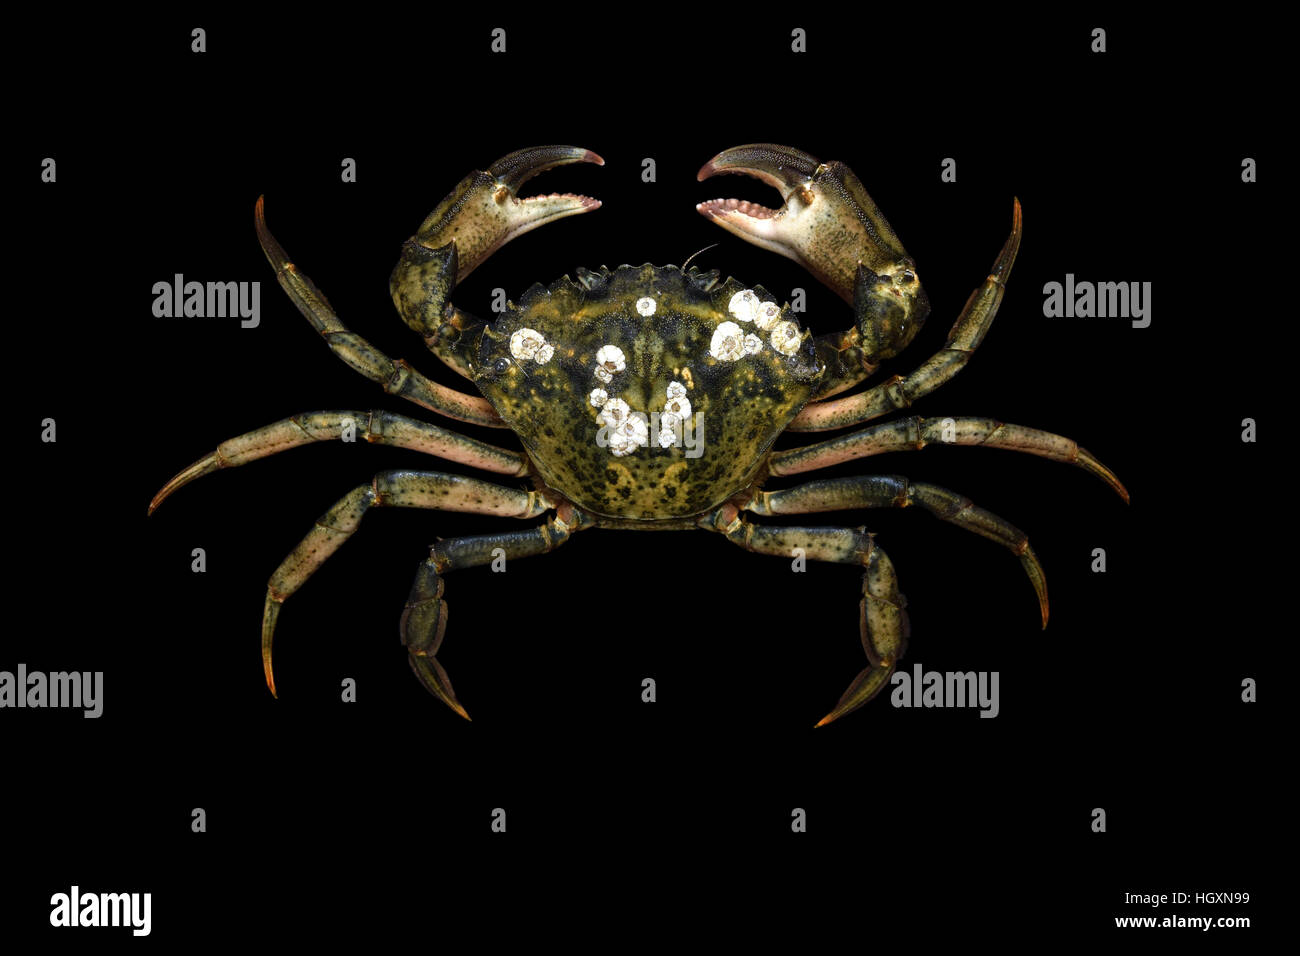 Alive specimen of European invasive crab species. - Stock Image